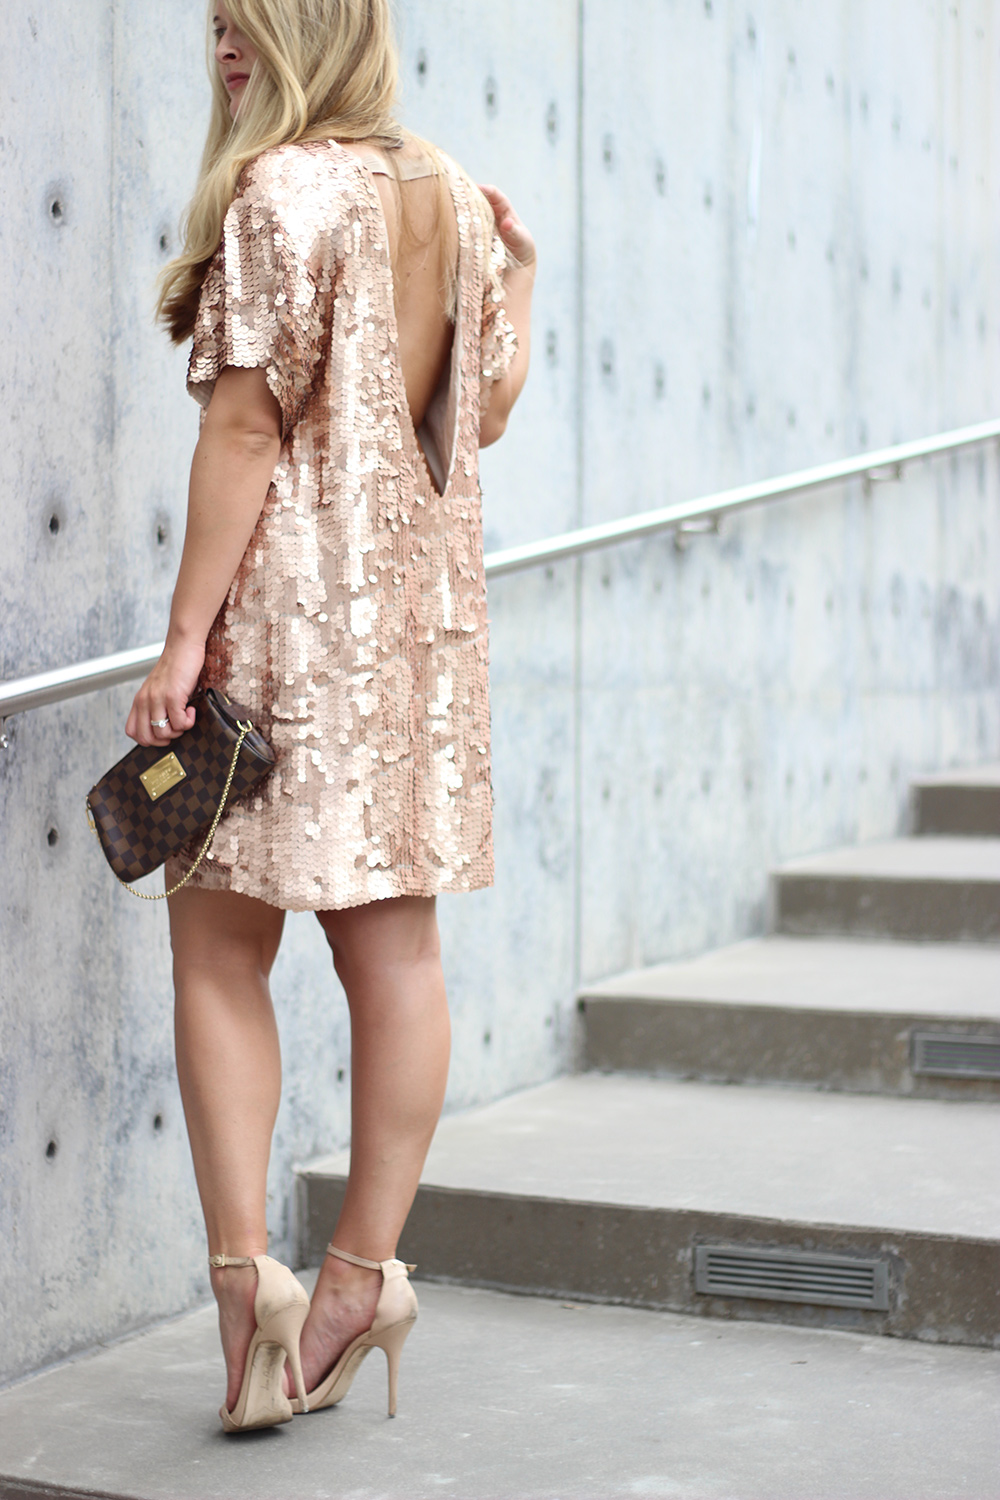 Fashion Girl 39 S Guide On What To Wear On New Year 39 S Eve